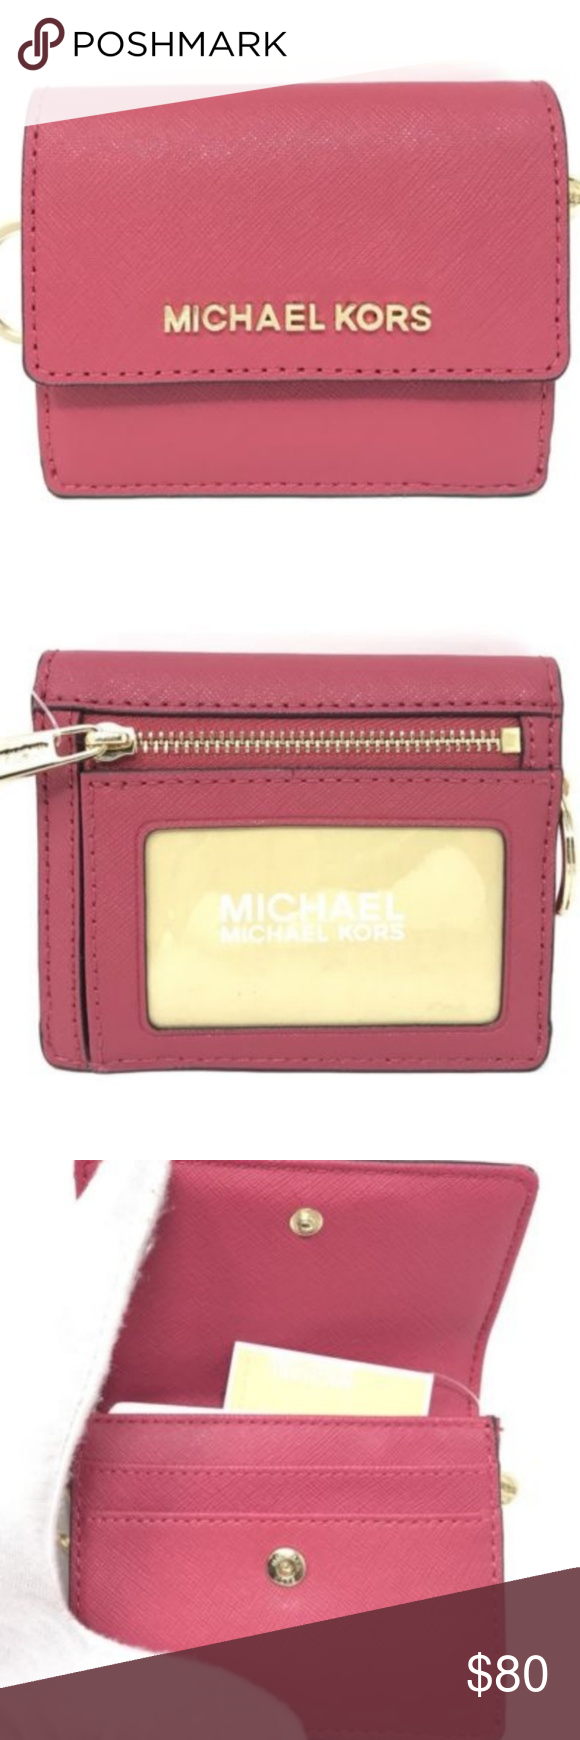 77149af46c57 NWT MICHAEL KORS JET SET ID KEY COIN CARD Wallet 100 % Guaranteed Authentic Michael  Kors